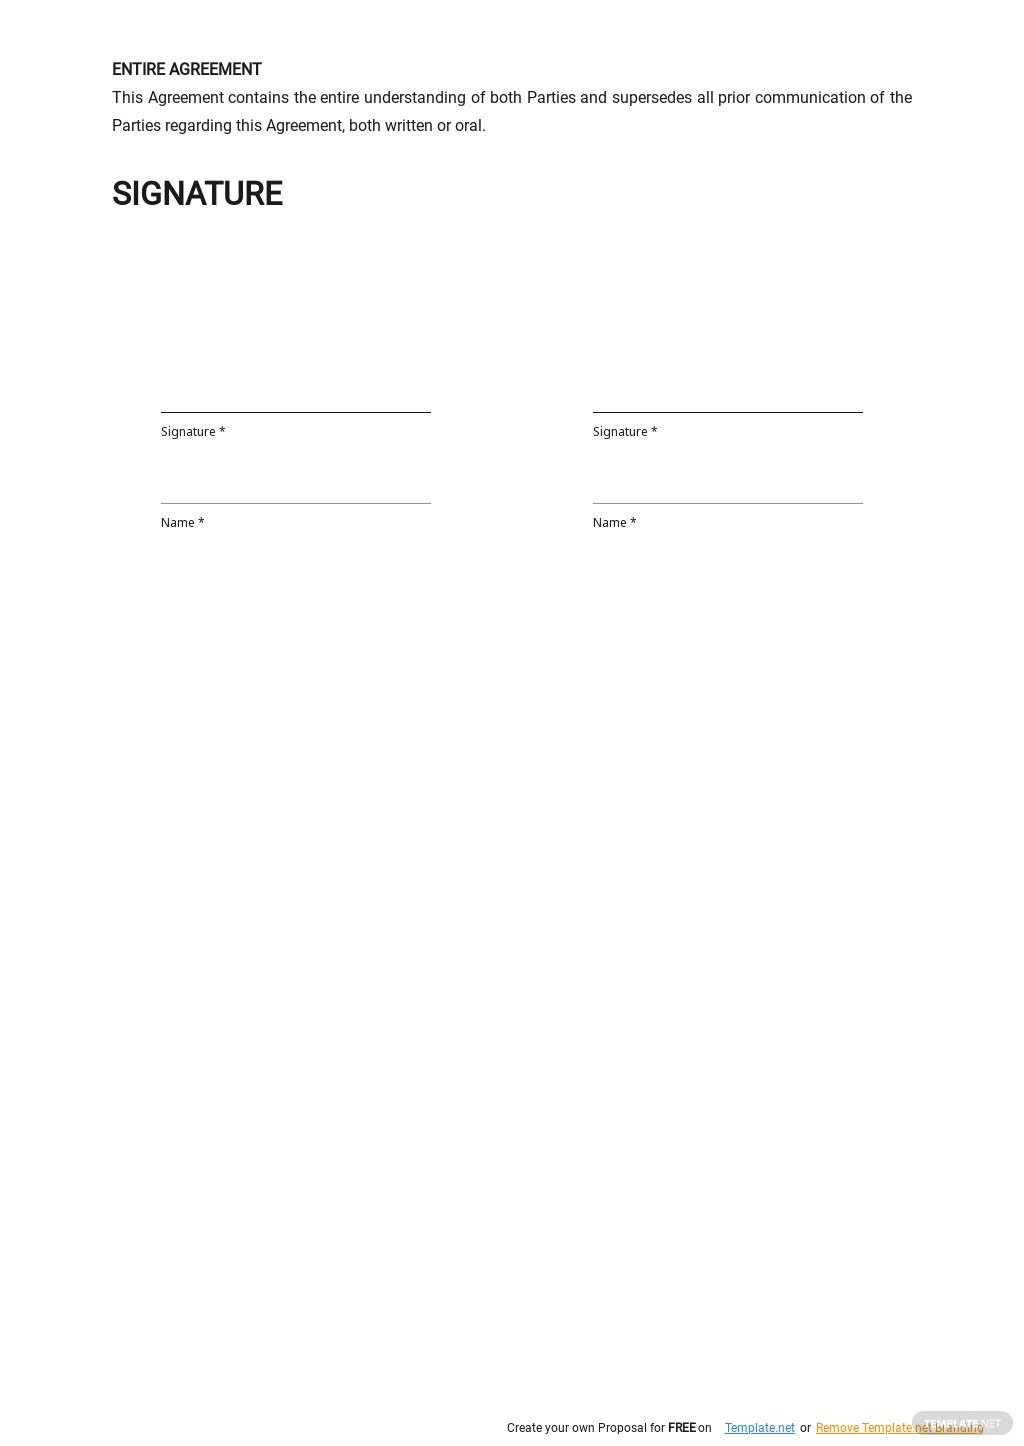 Master Professional Services Agreement Template 2.jpe